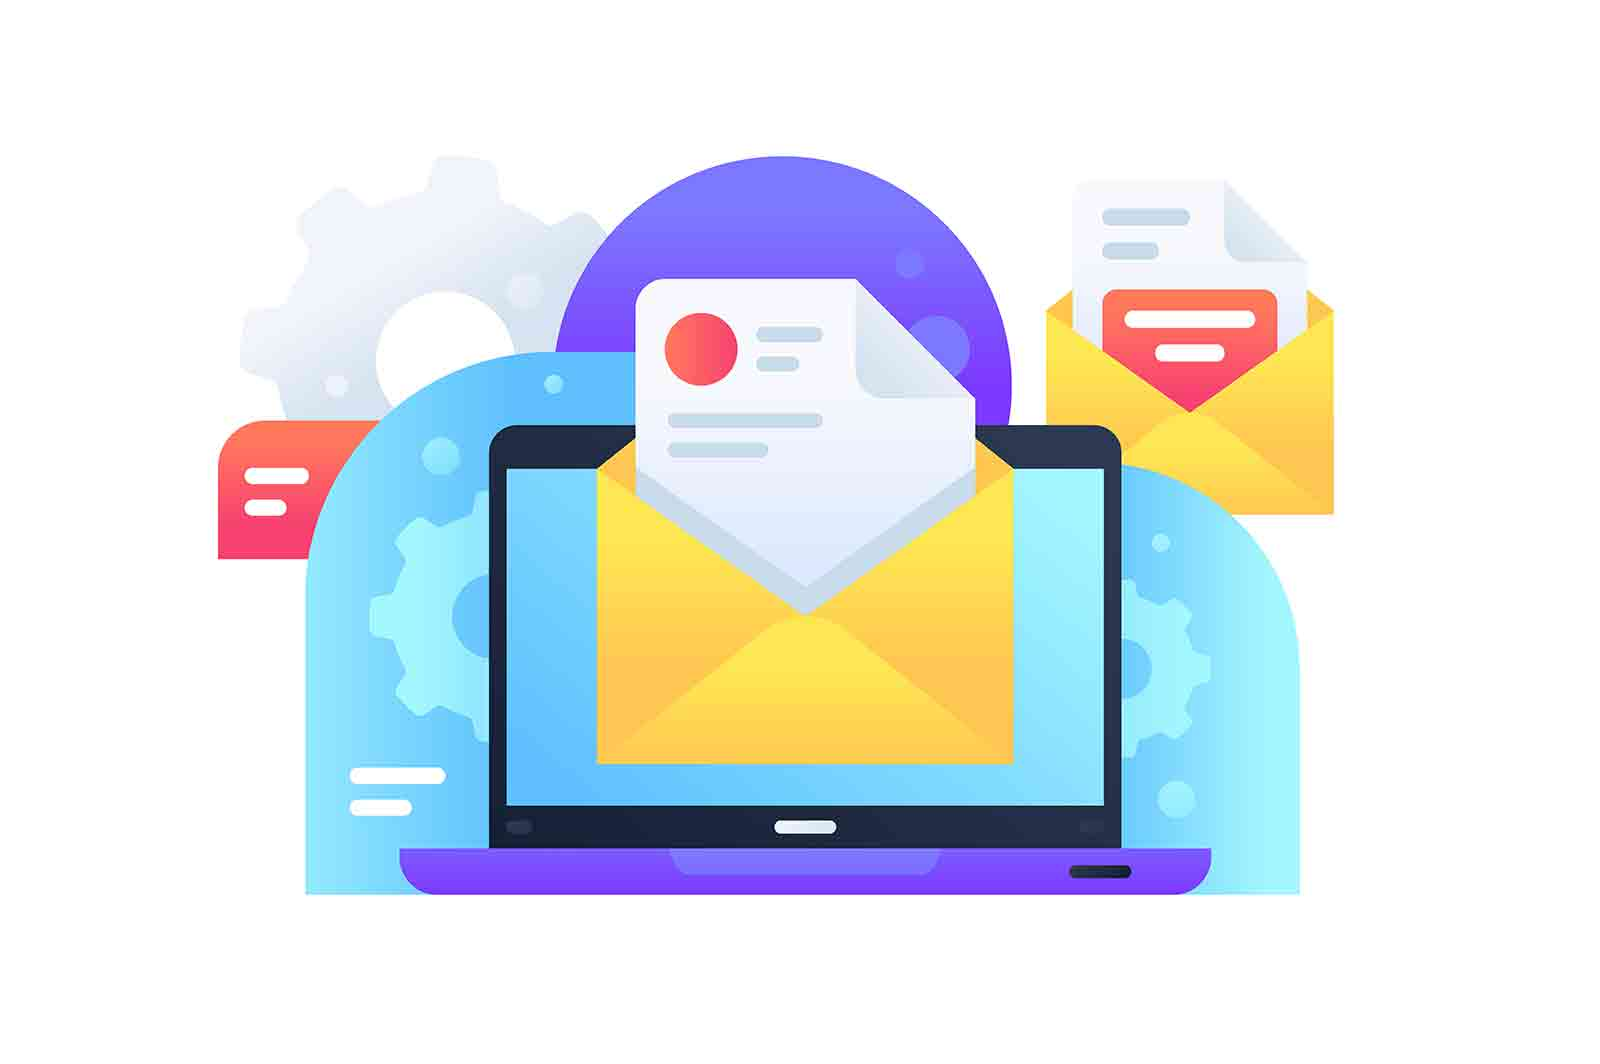 Modern email marketing delivery ad for spread of information using internet. Concept online delivery of letters in envelope laptop, web. Vector illustration.